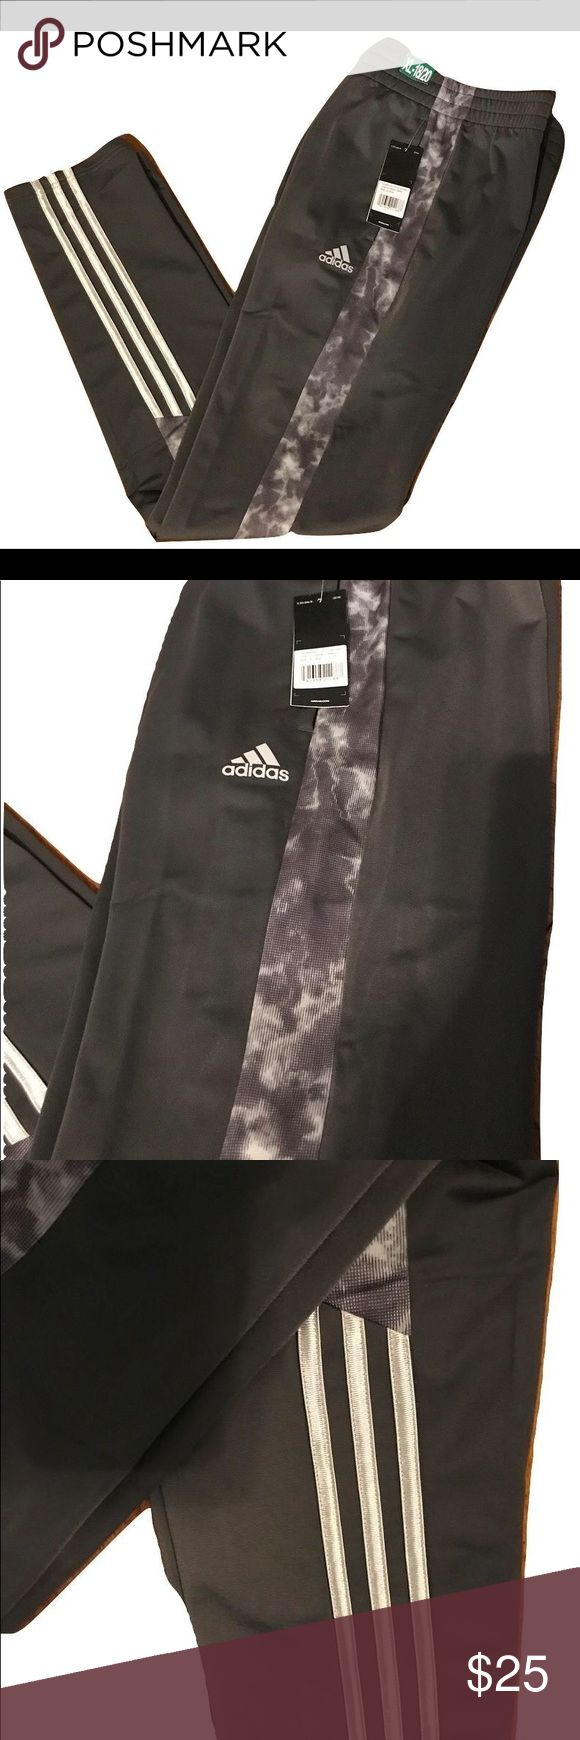 Adidas Boys Pants dark grey Brand new Great for your boys Select tour boys' size  XL - 18/20 L - 14/16 S - 8 adidas Bottoms Sweatpants & Joggers